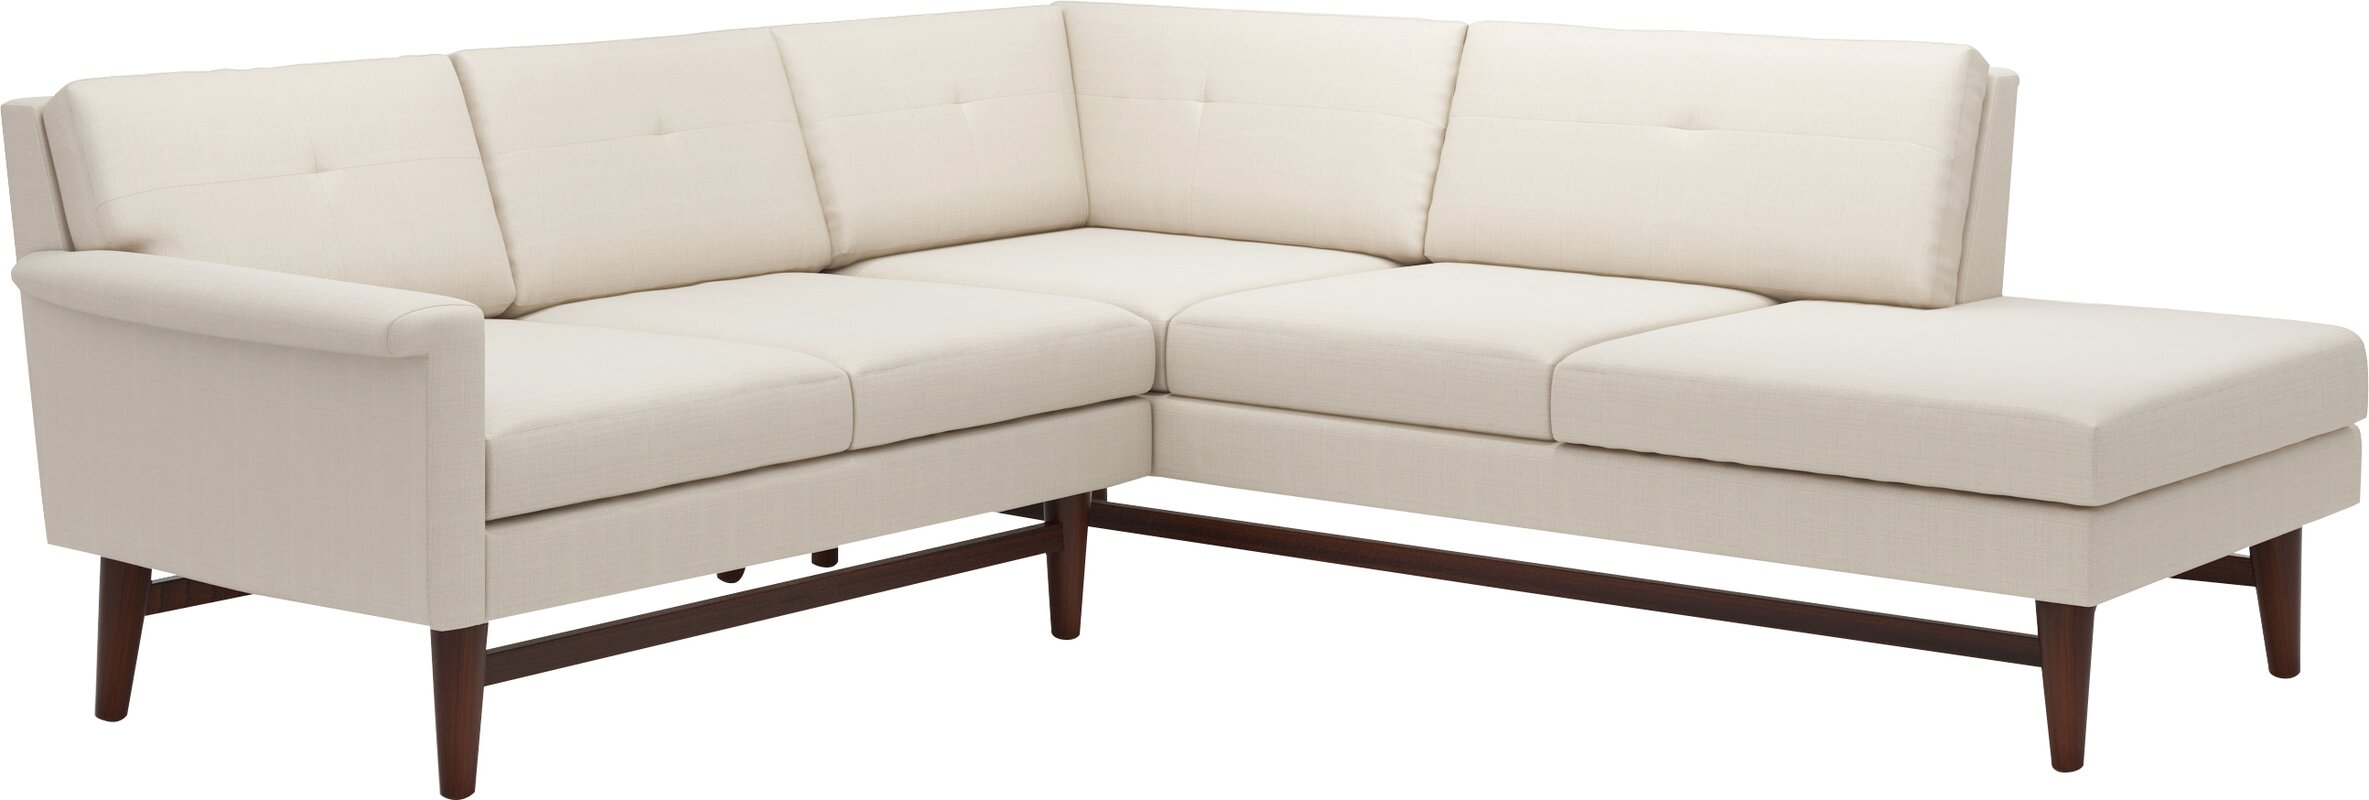 Diggity Corner Sectional Sofa With Bumper